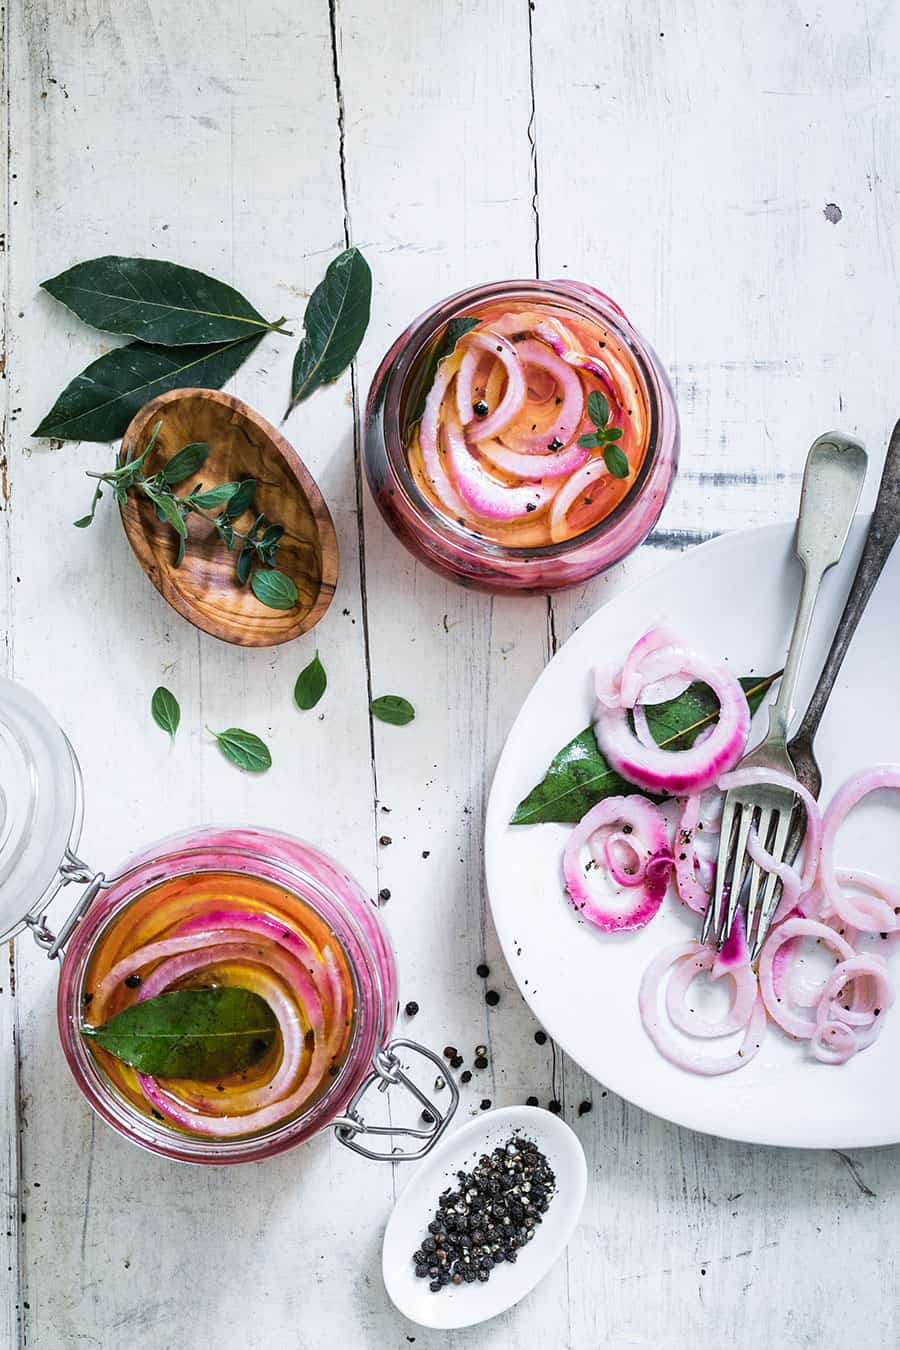 Two jars with red pickled onions made with peppercorns, bay leaves and marjoram.